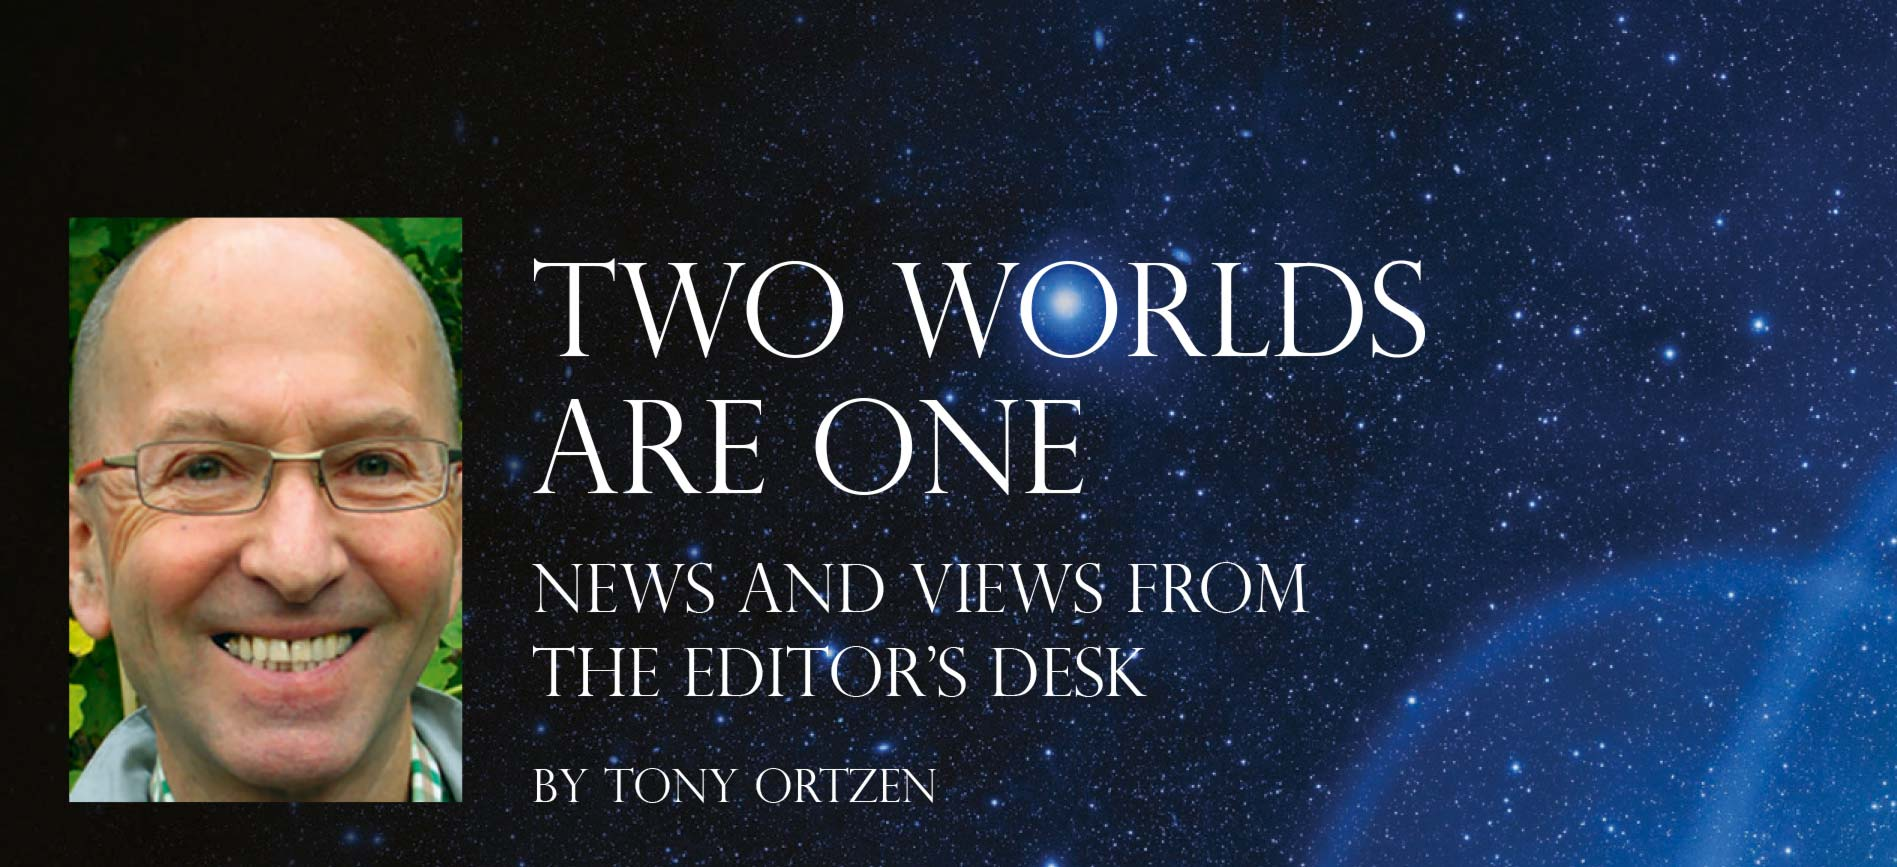 Two Words Are One News and views from the editor's desk  By Tony Ortzen